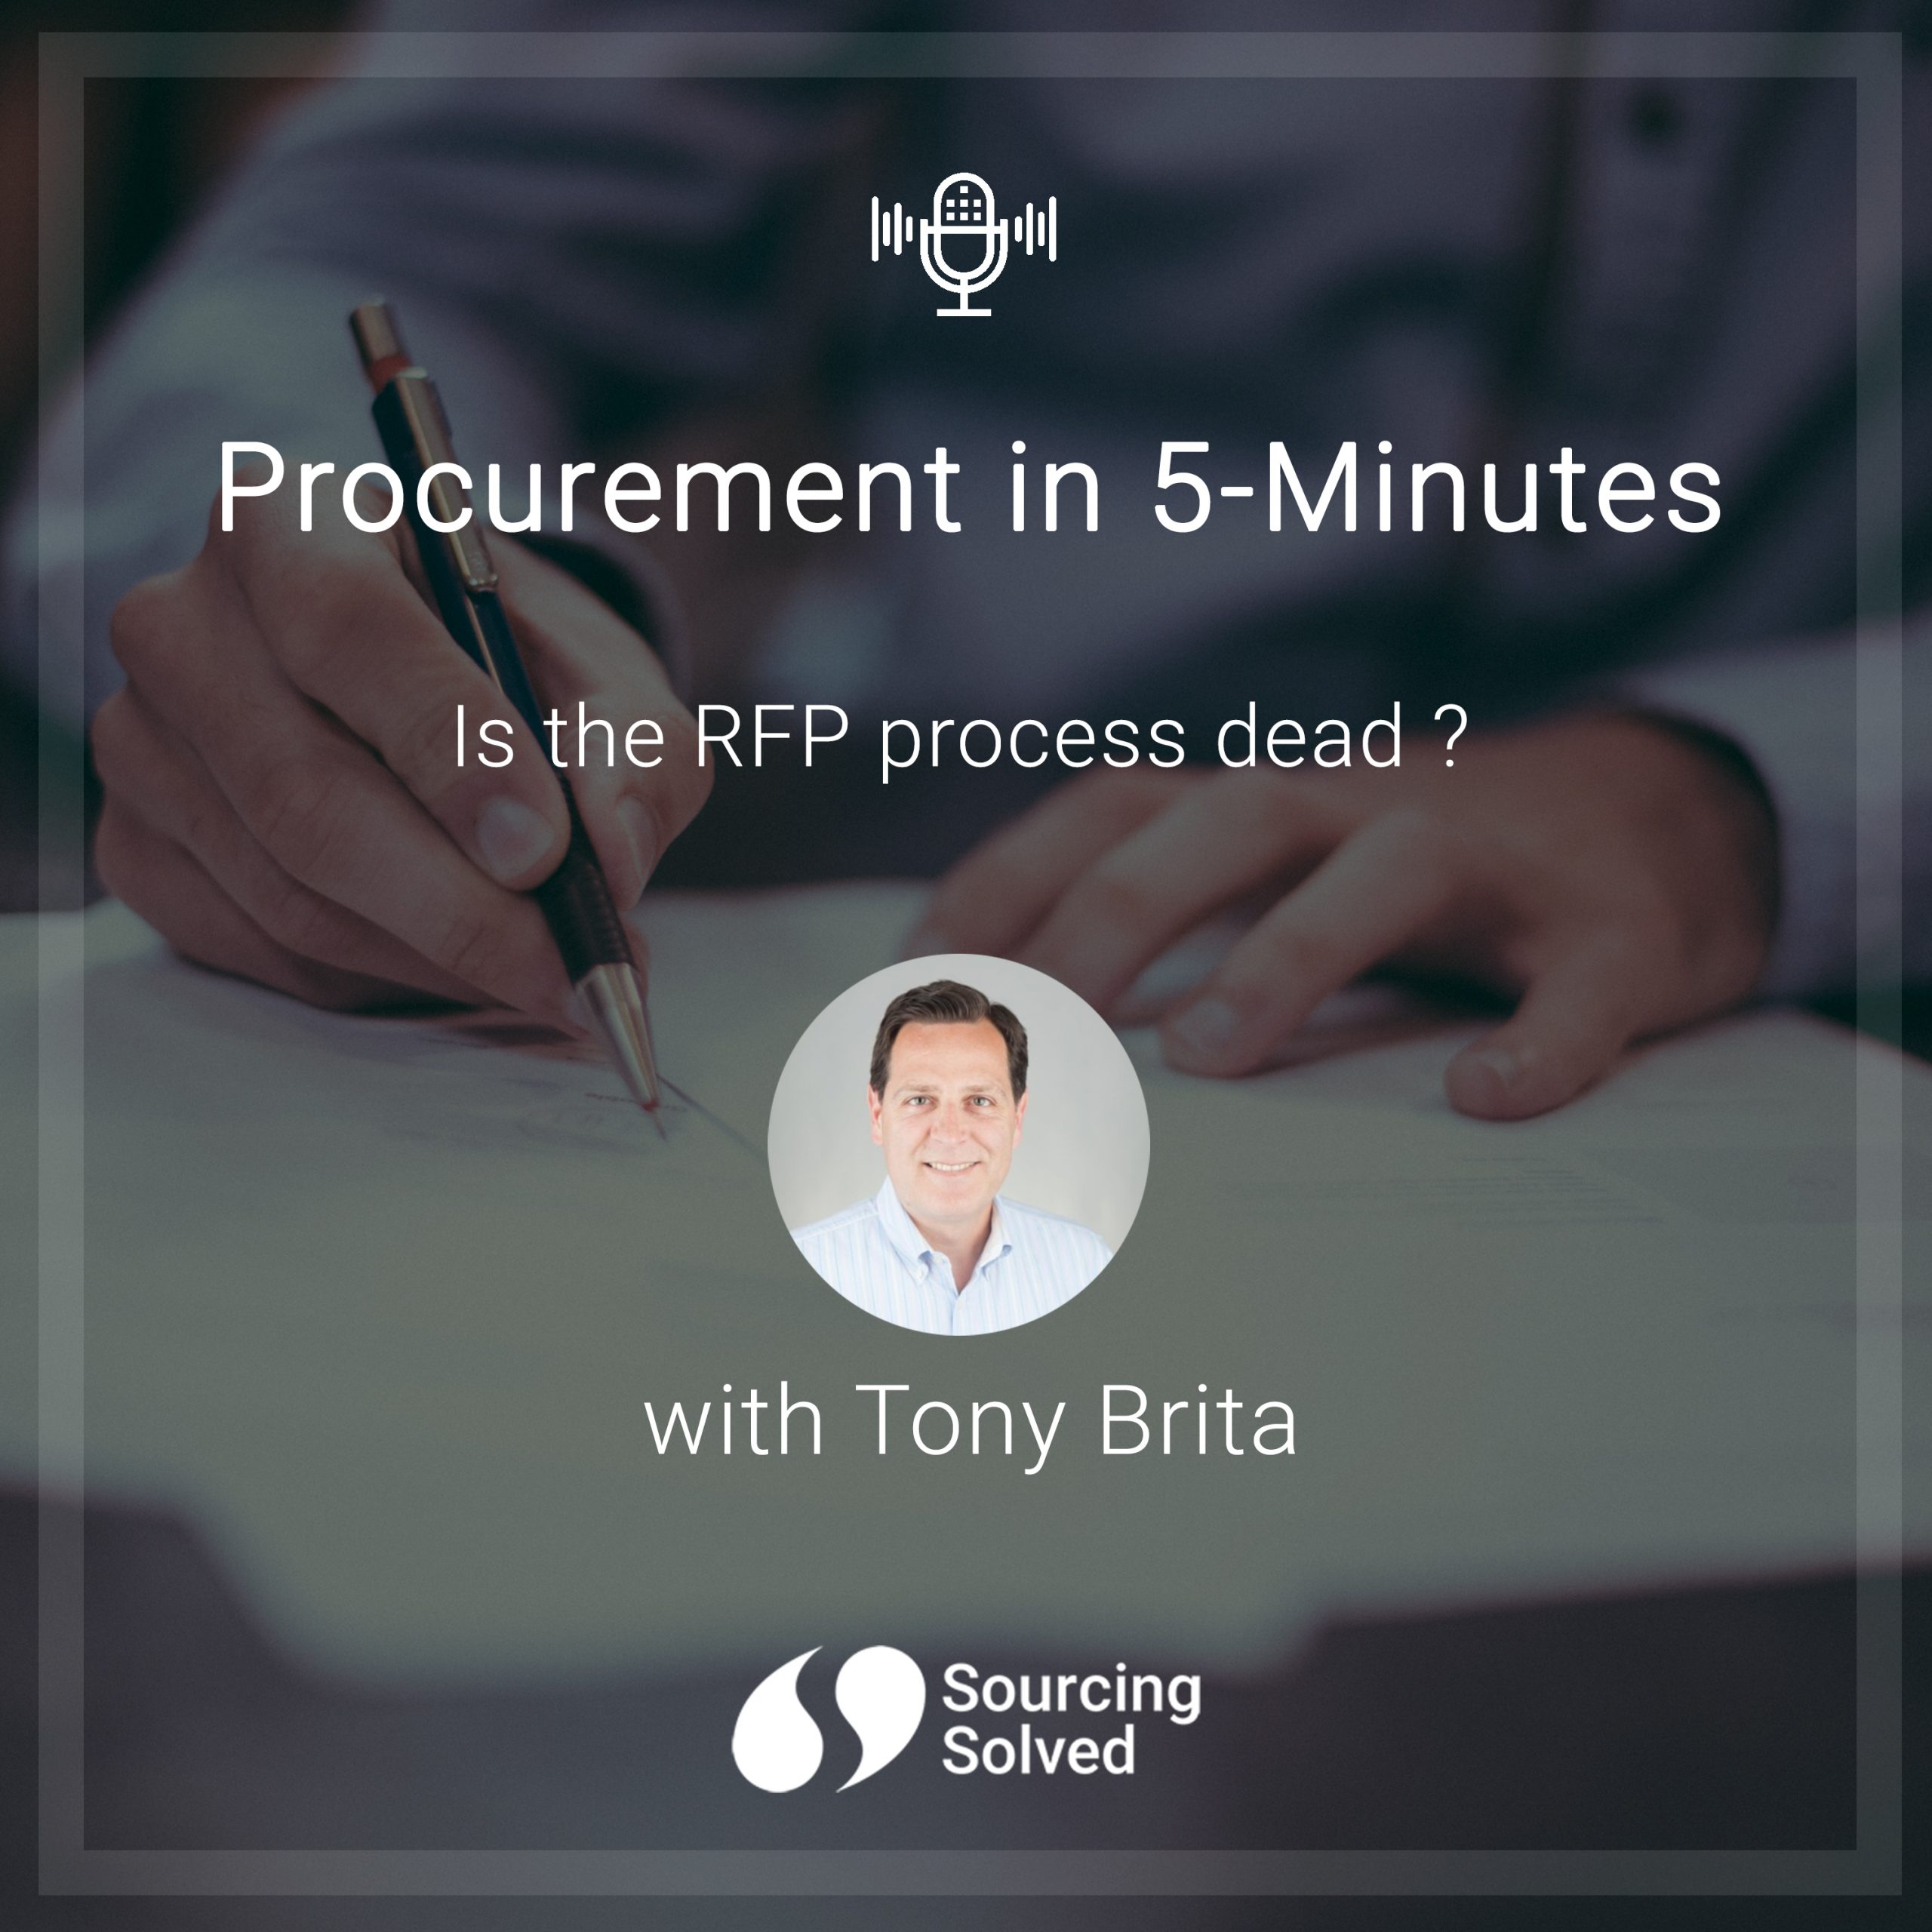 Procurement in 5-Minutes: Is the RFP process dead?